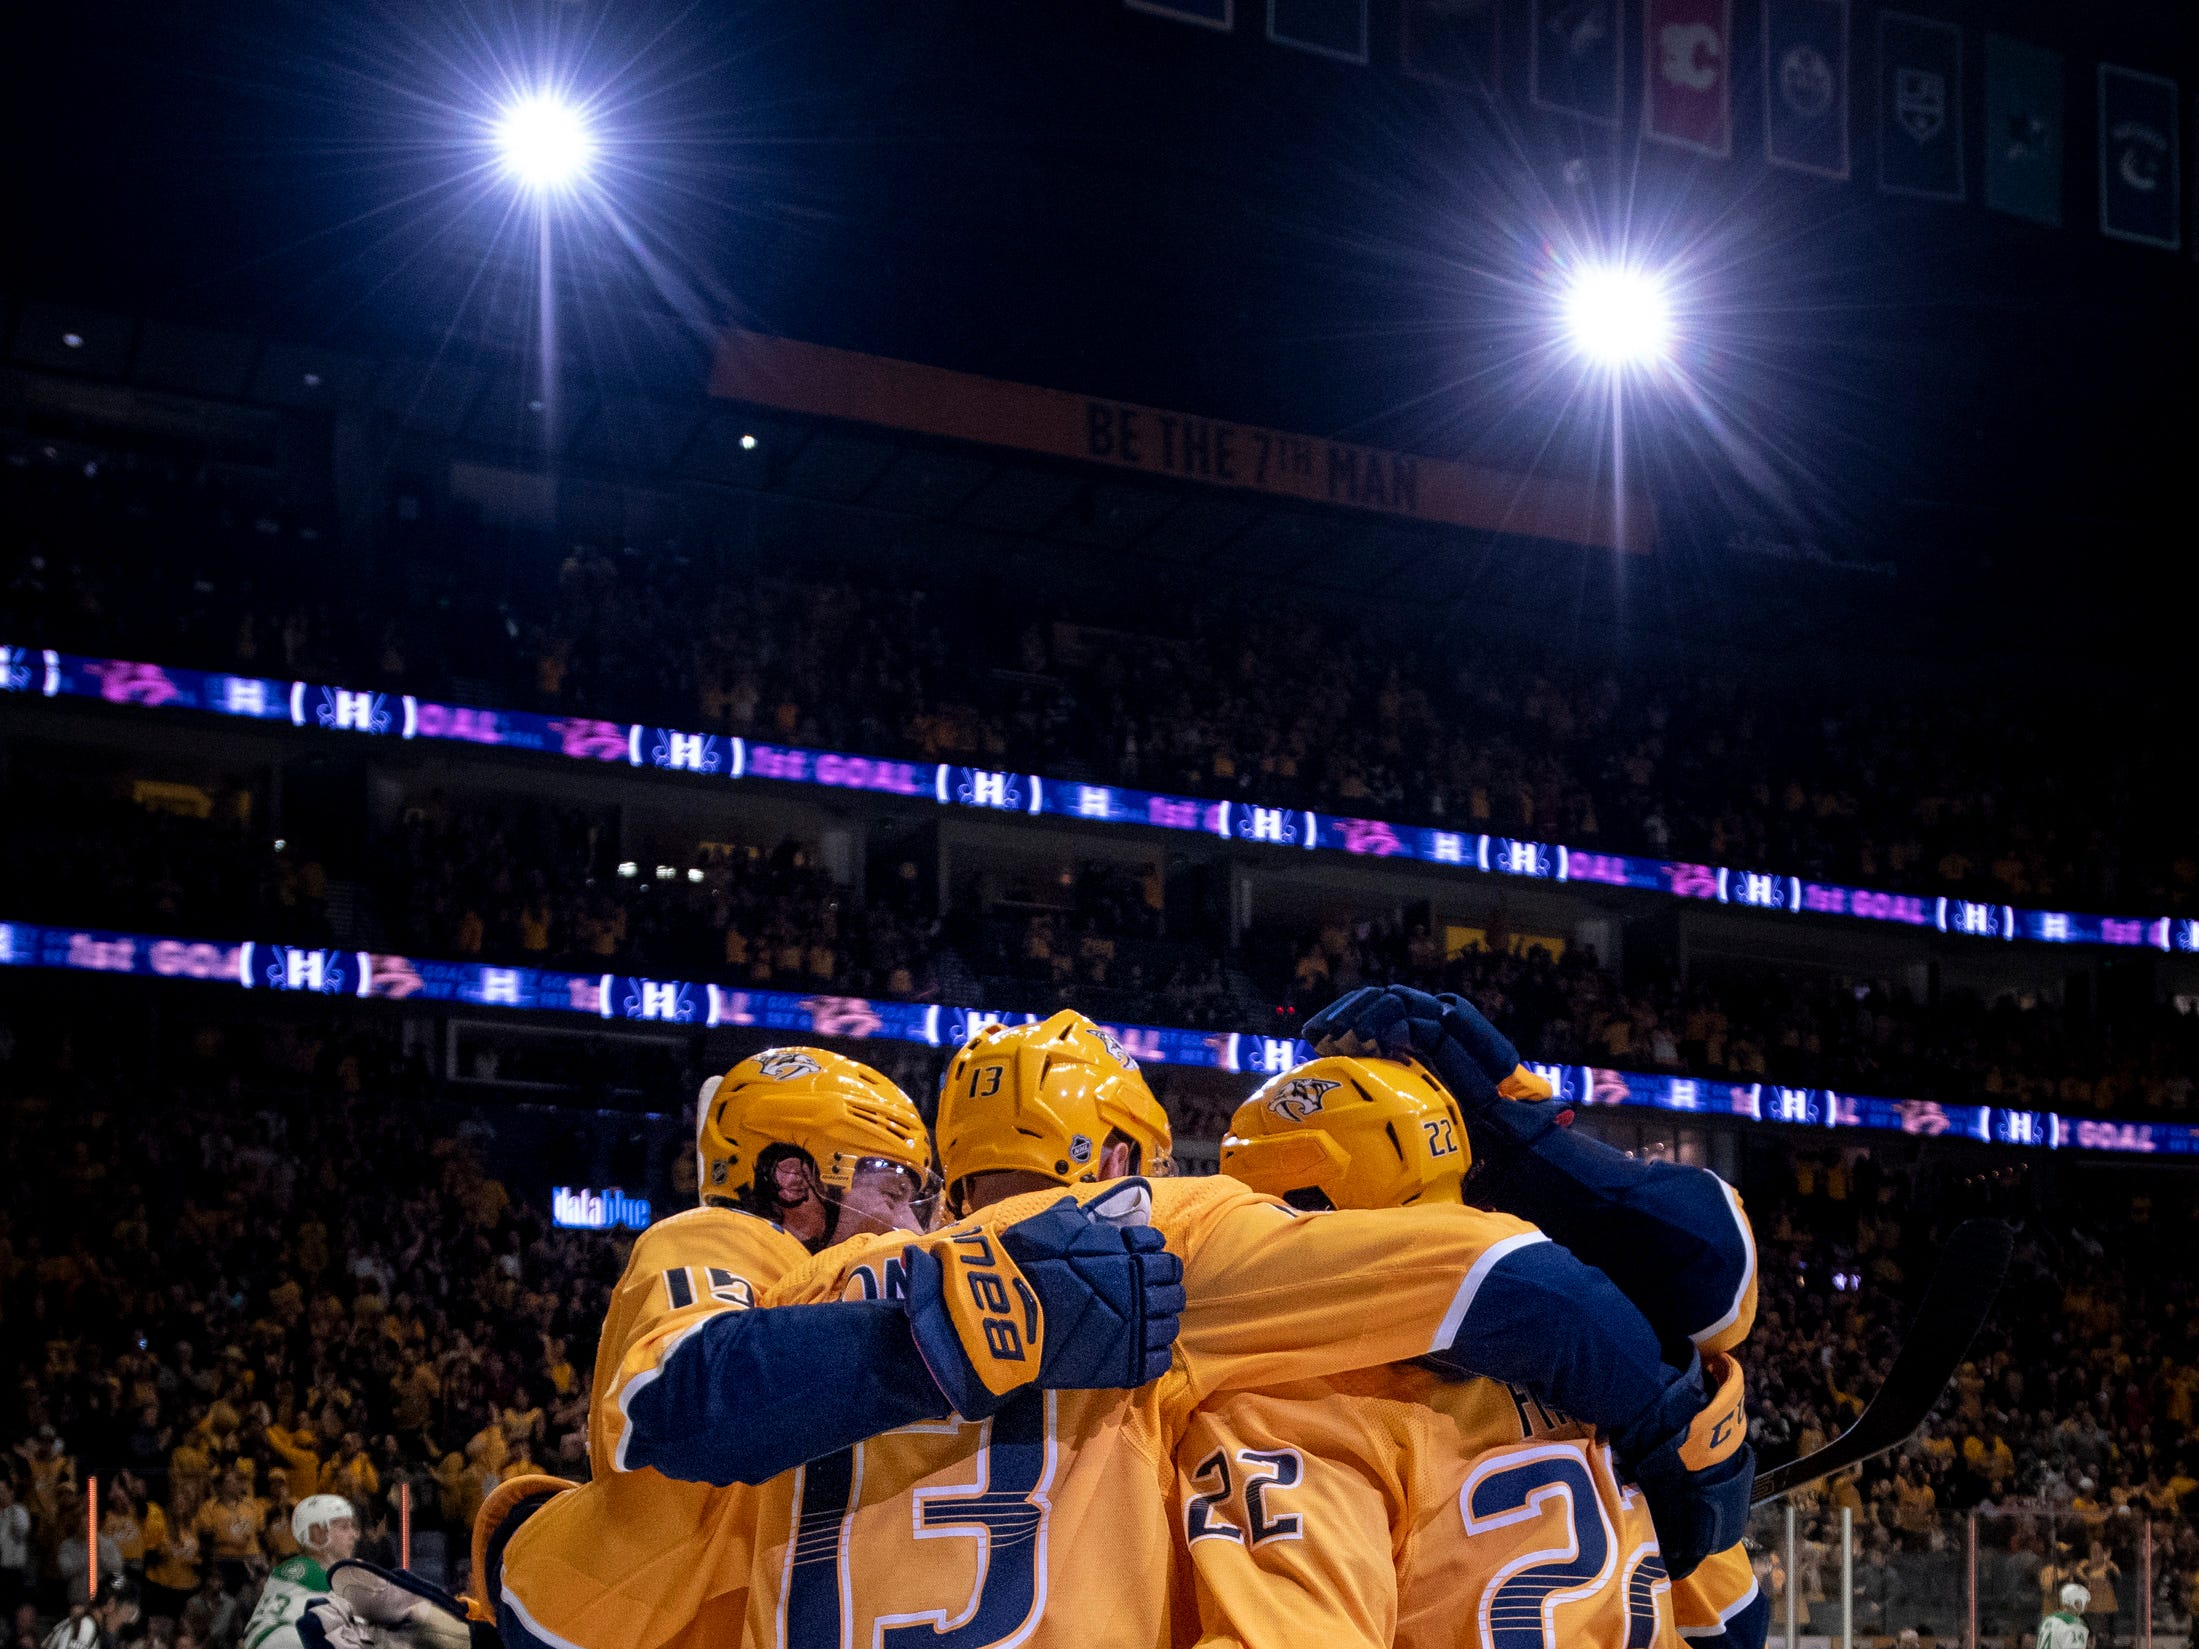 Nashville Predators right wing Craig Smith (15, left) reacts to scoring against the Dallas Stars during the first period at Bridgestone Arena in Nashville, Tenn., Thursday, Feb. 7, 2019.